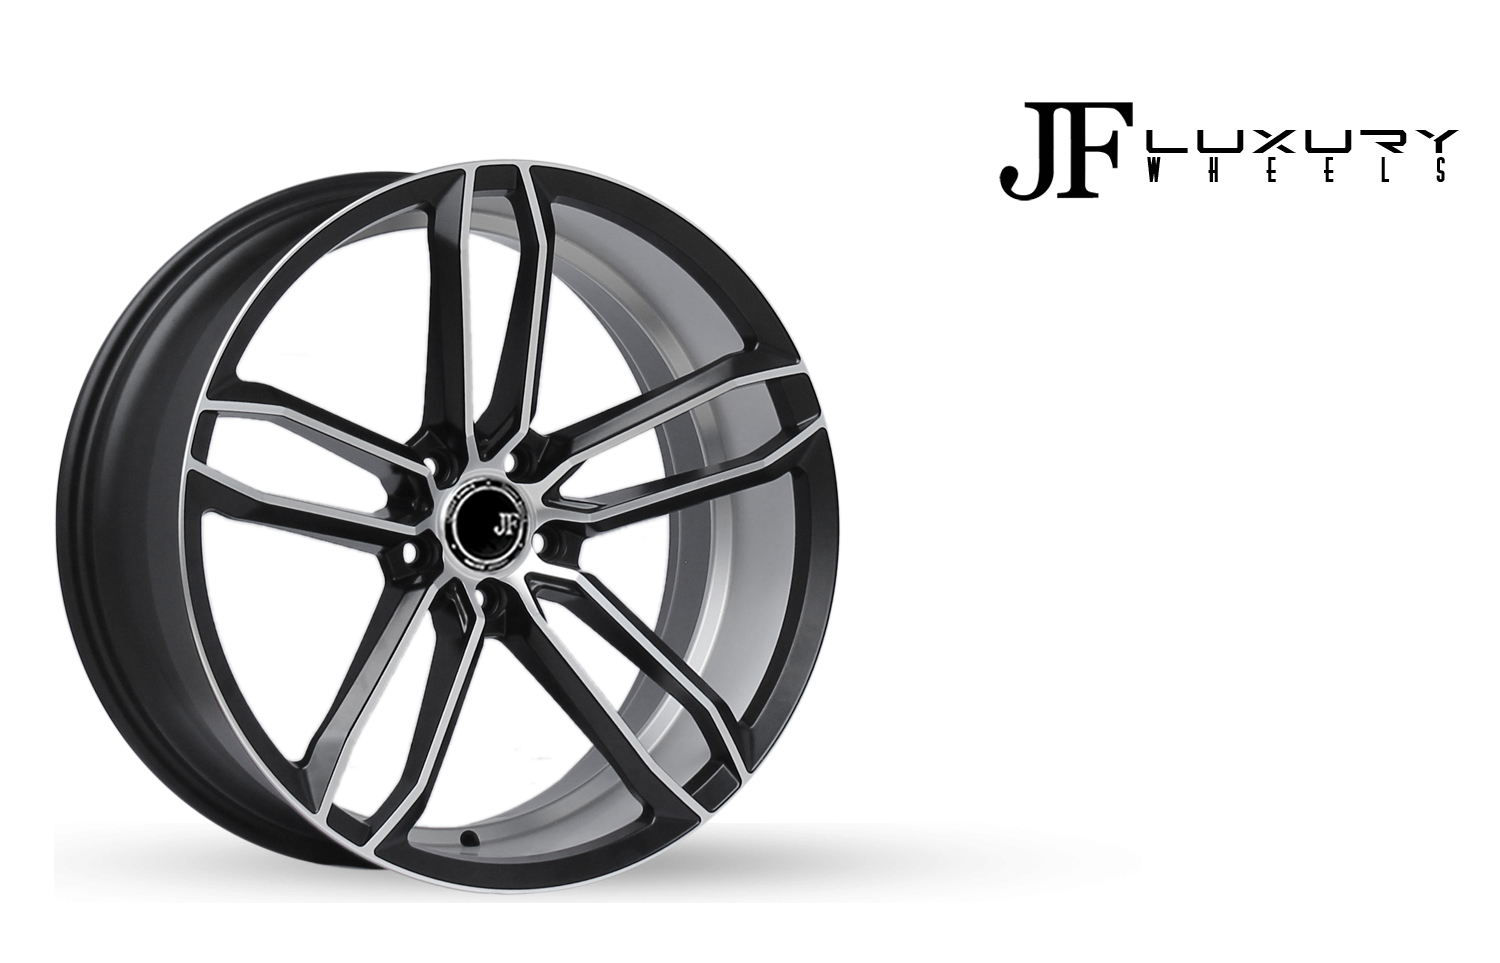 RS 6 MBKFP 20x8.5-9.5 5x113